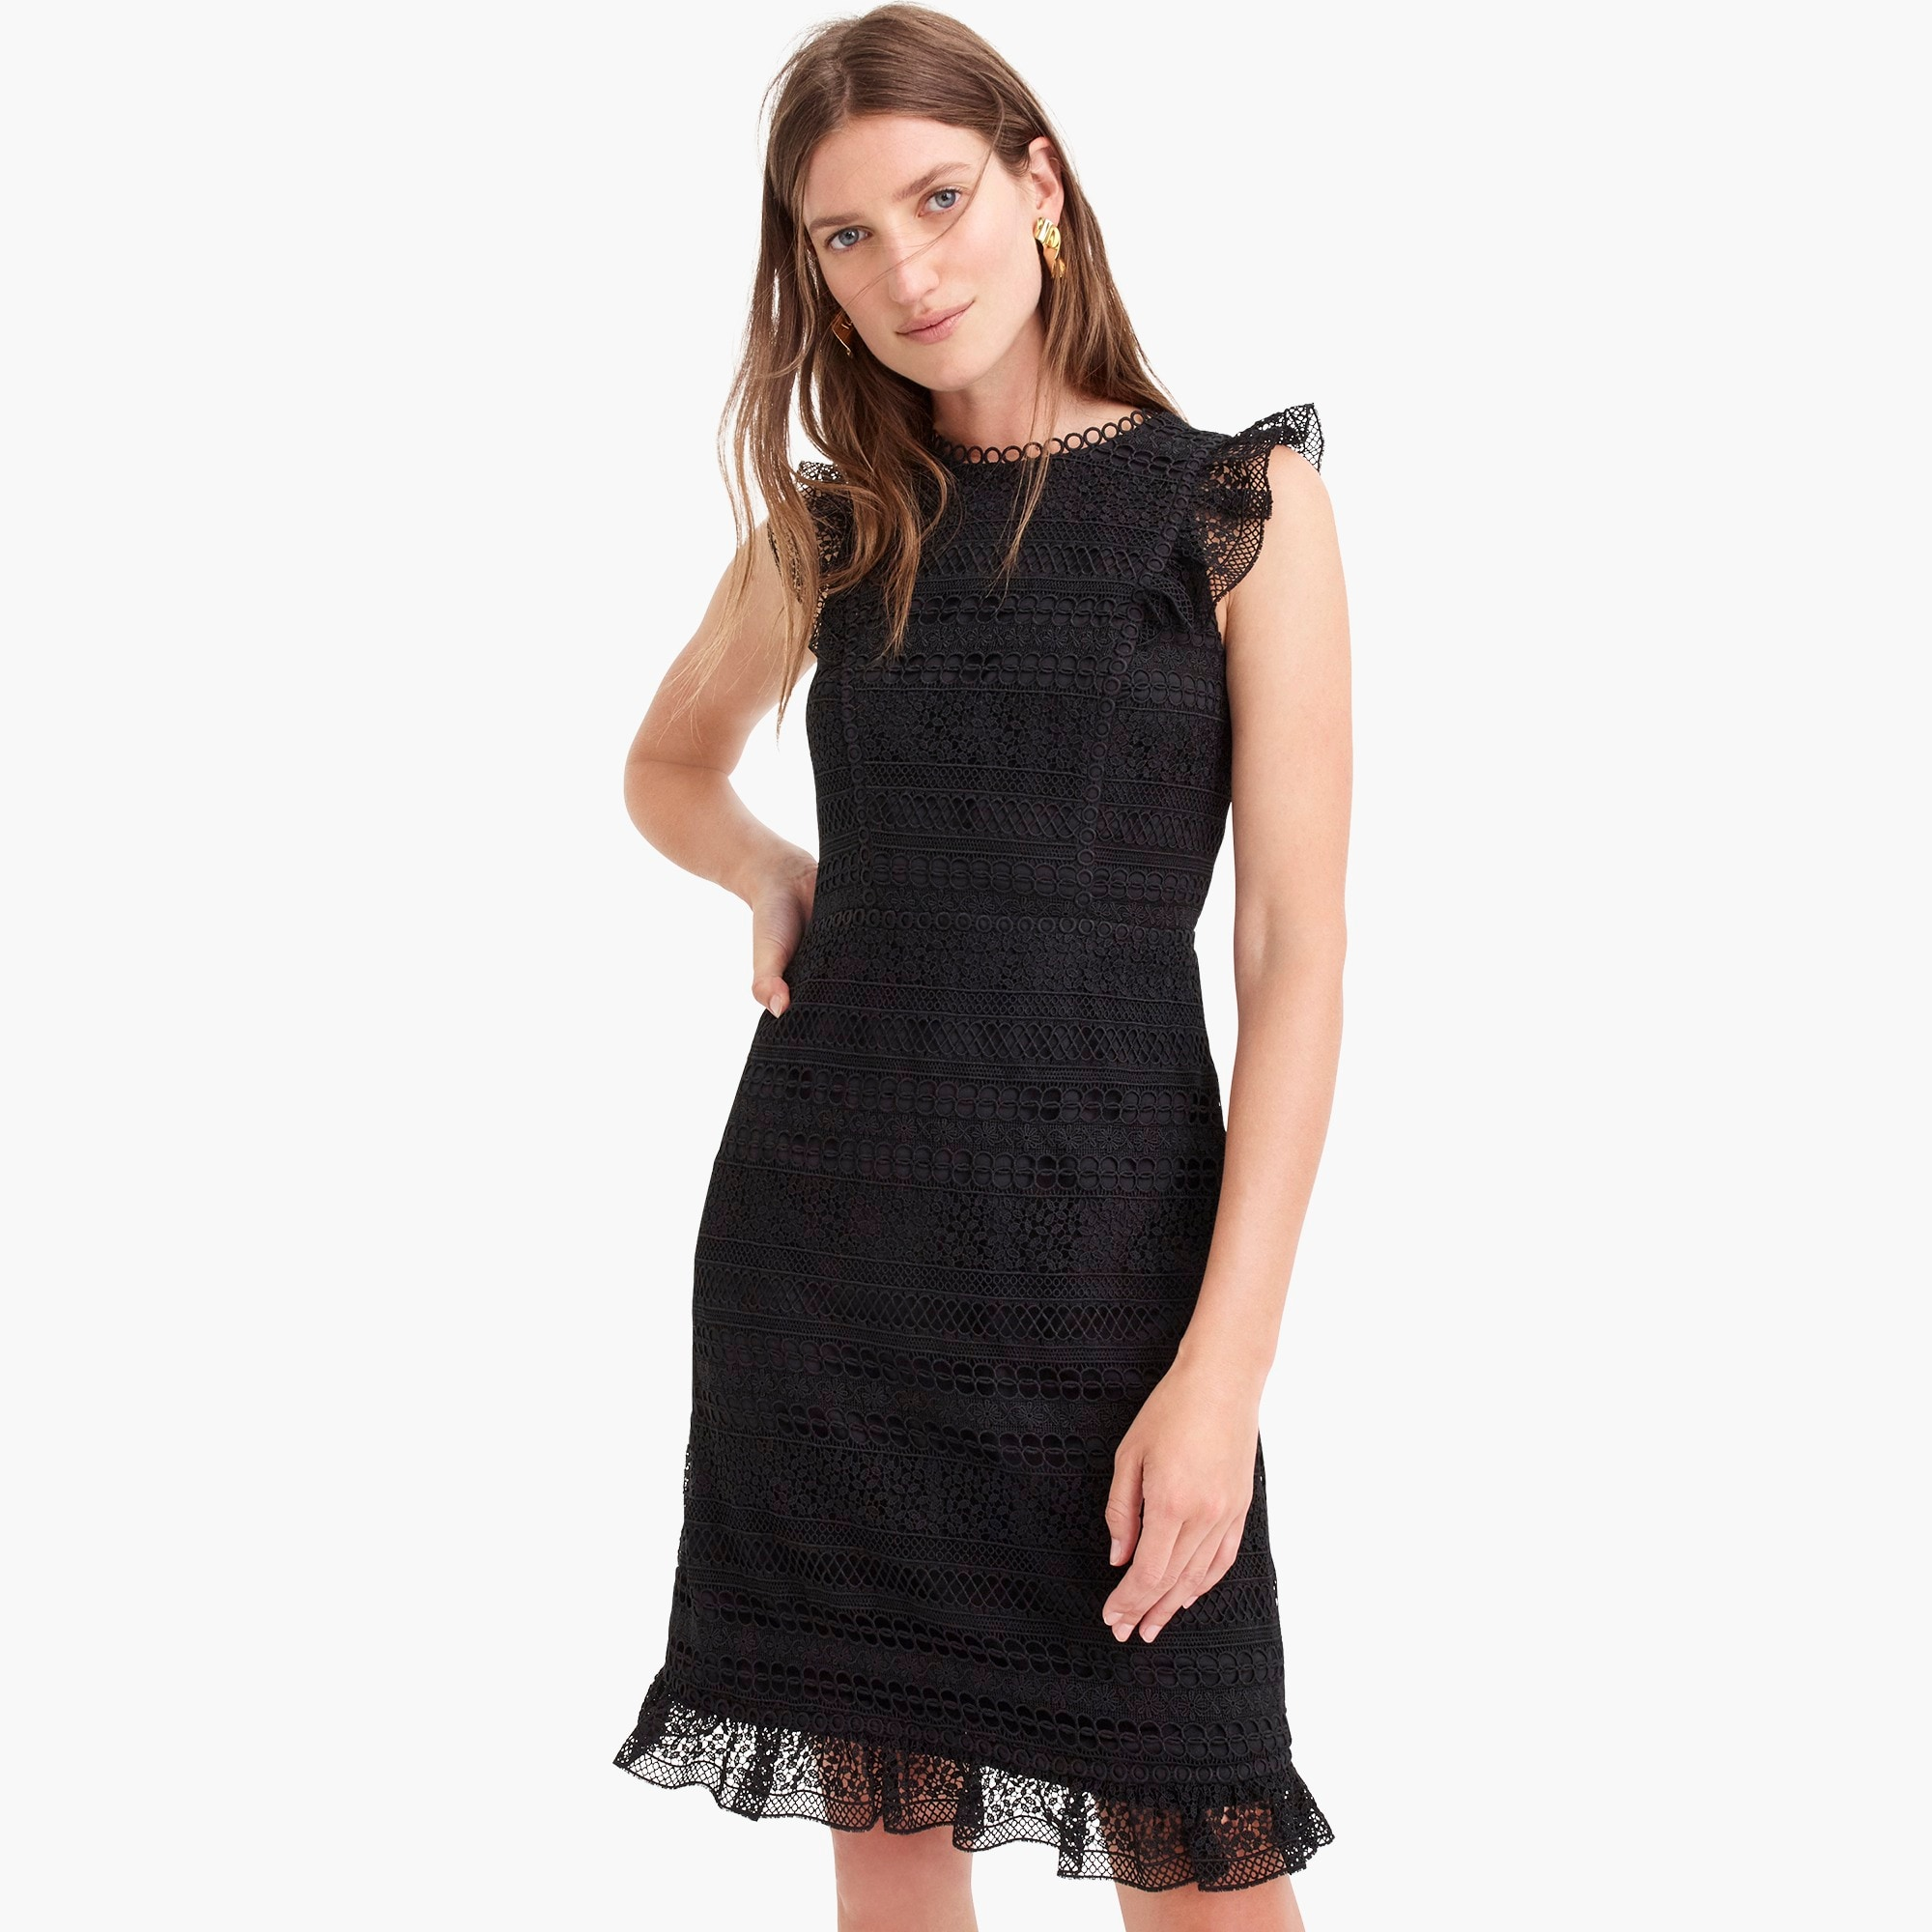 Cap-sleeve ruffle dress in mixed lace women dresses c